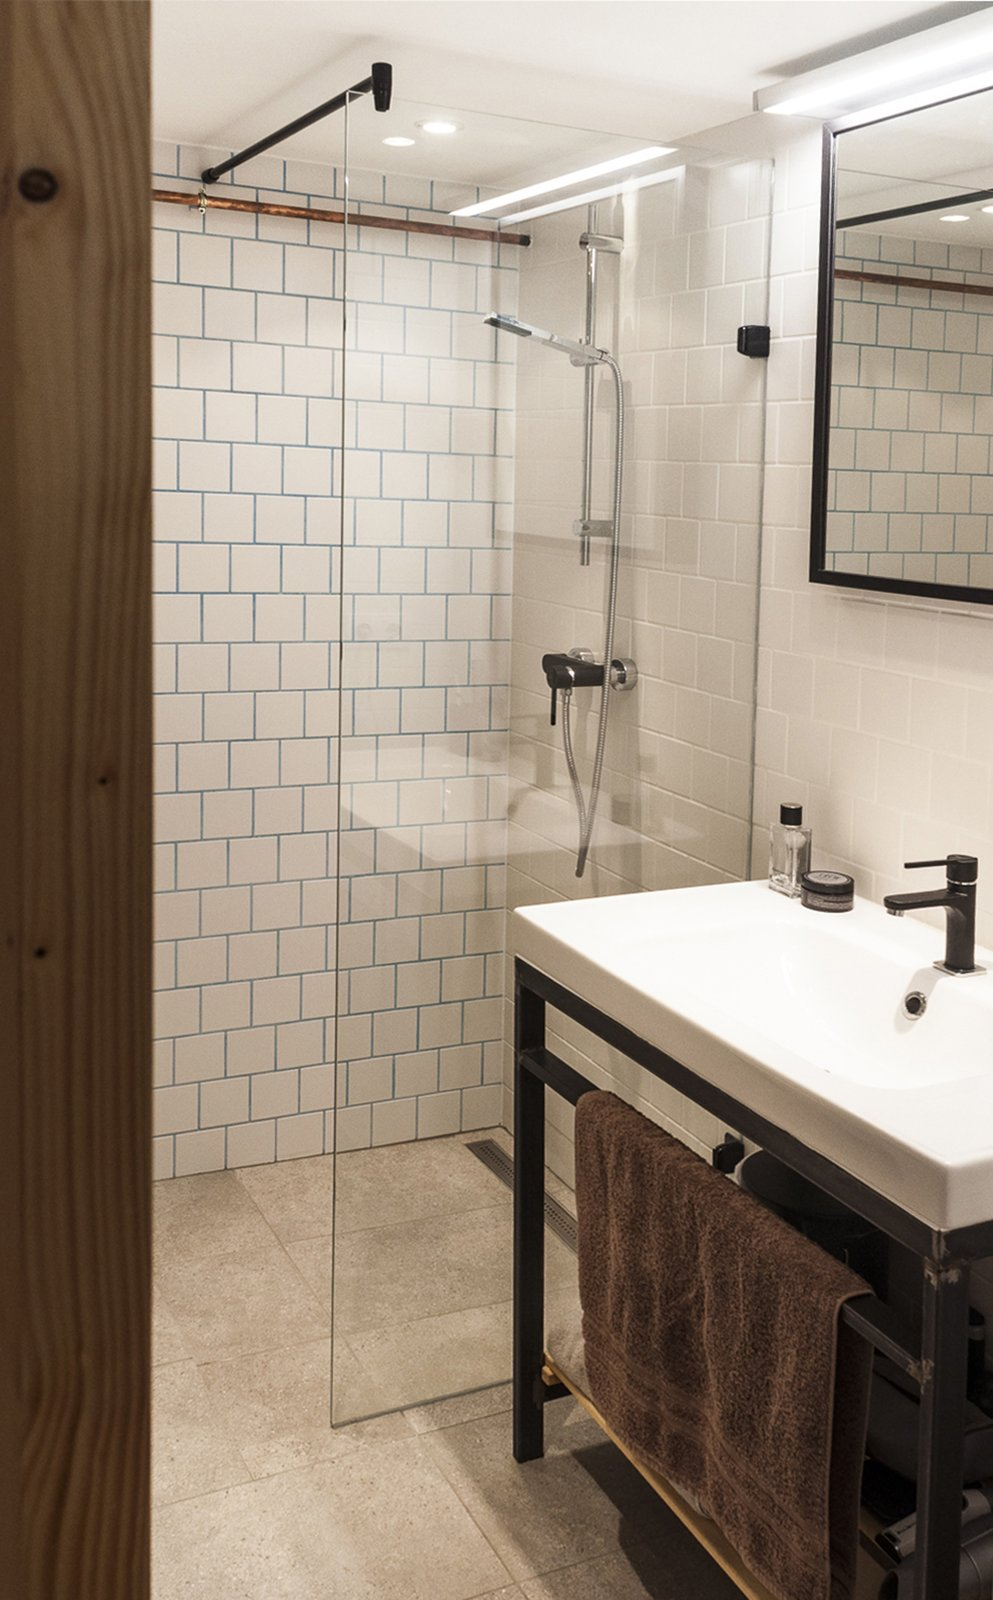 Bath Room, Metal Counter, Pedestal Sink, Open Shower, Recessed Lighting, and Ceramic Tile Wall The bathroom reflects the openness of the apartment itself, with a barely-there glass wall separating the shower  Micro live:work studio by Studio Bunyik